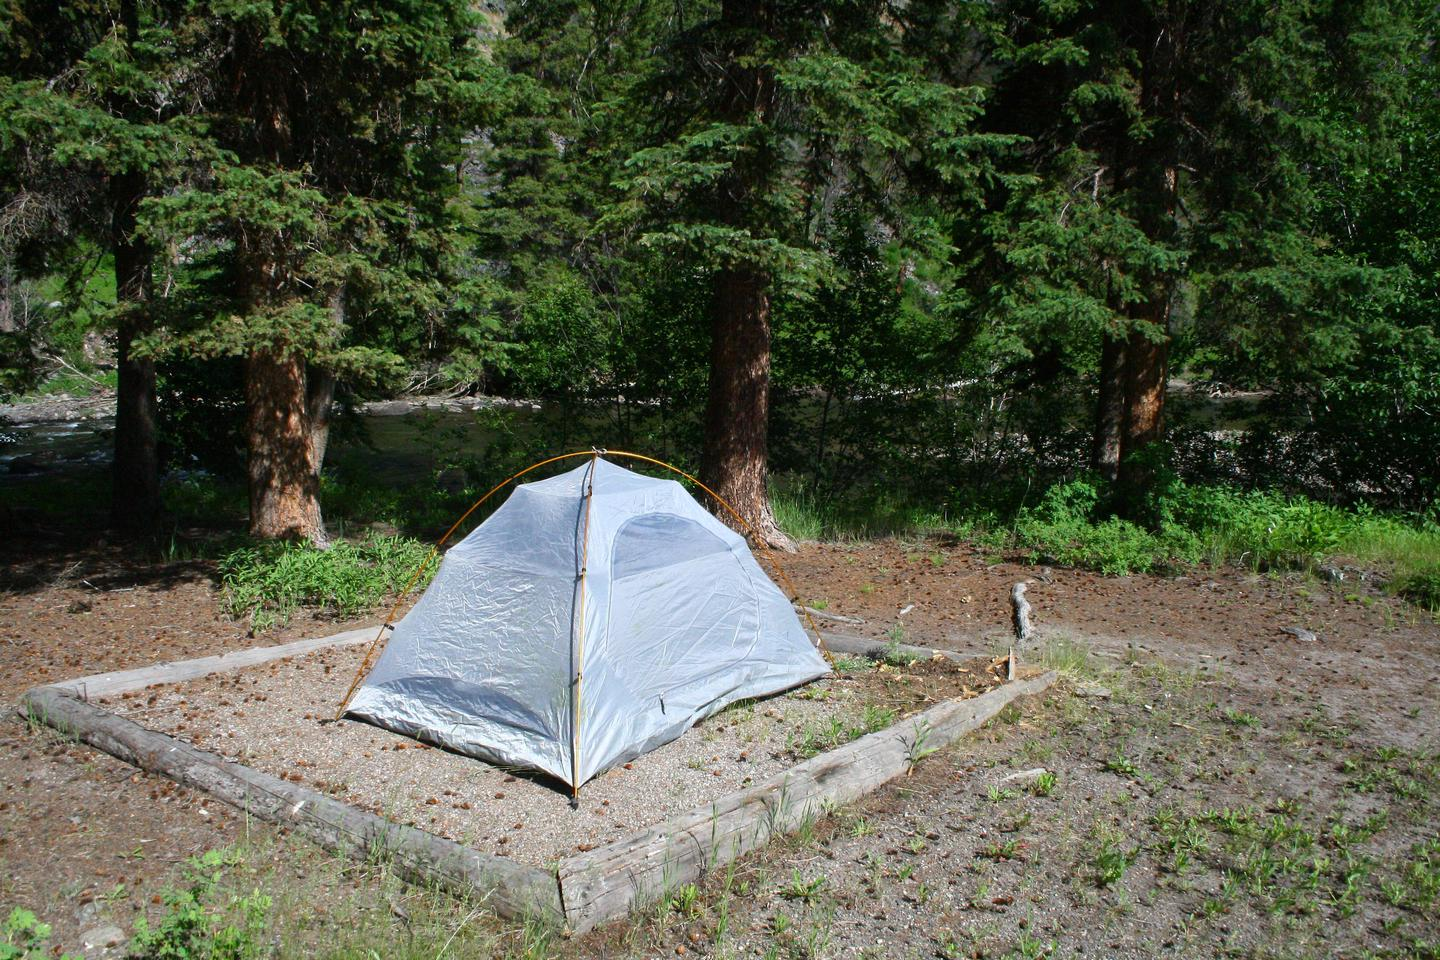 Slough Creek Campground site #11.Slough Creek Campground site #11